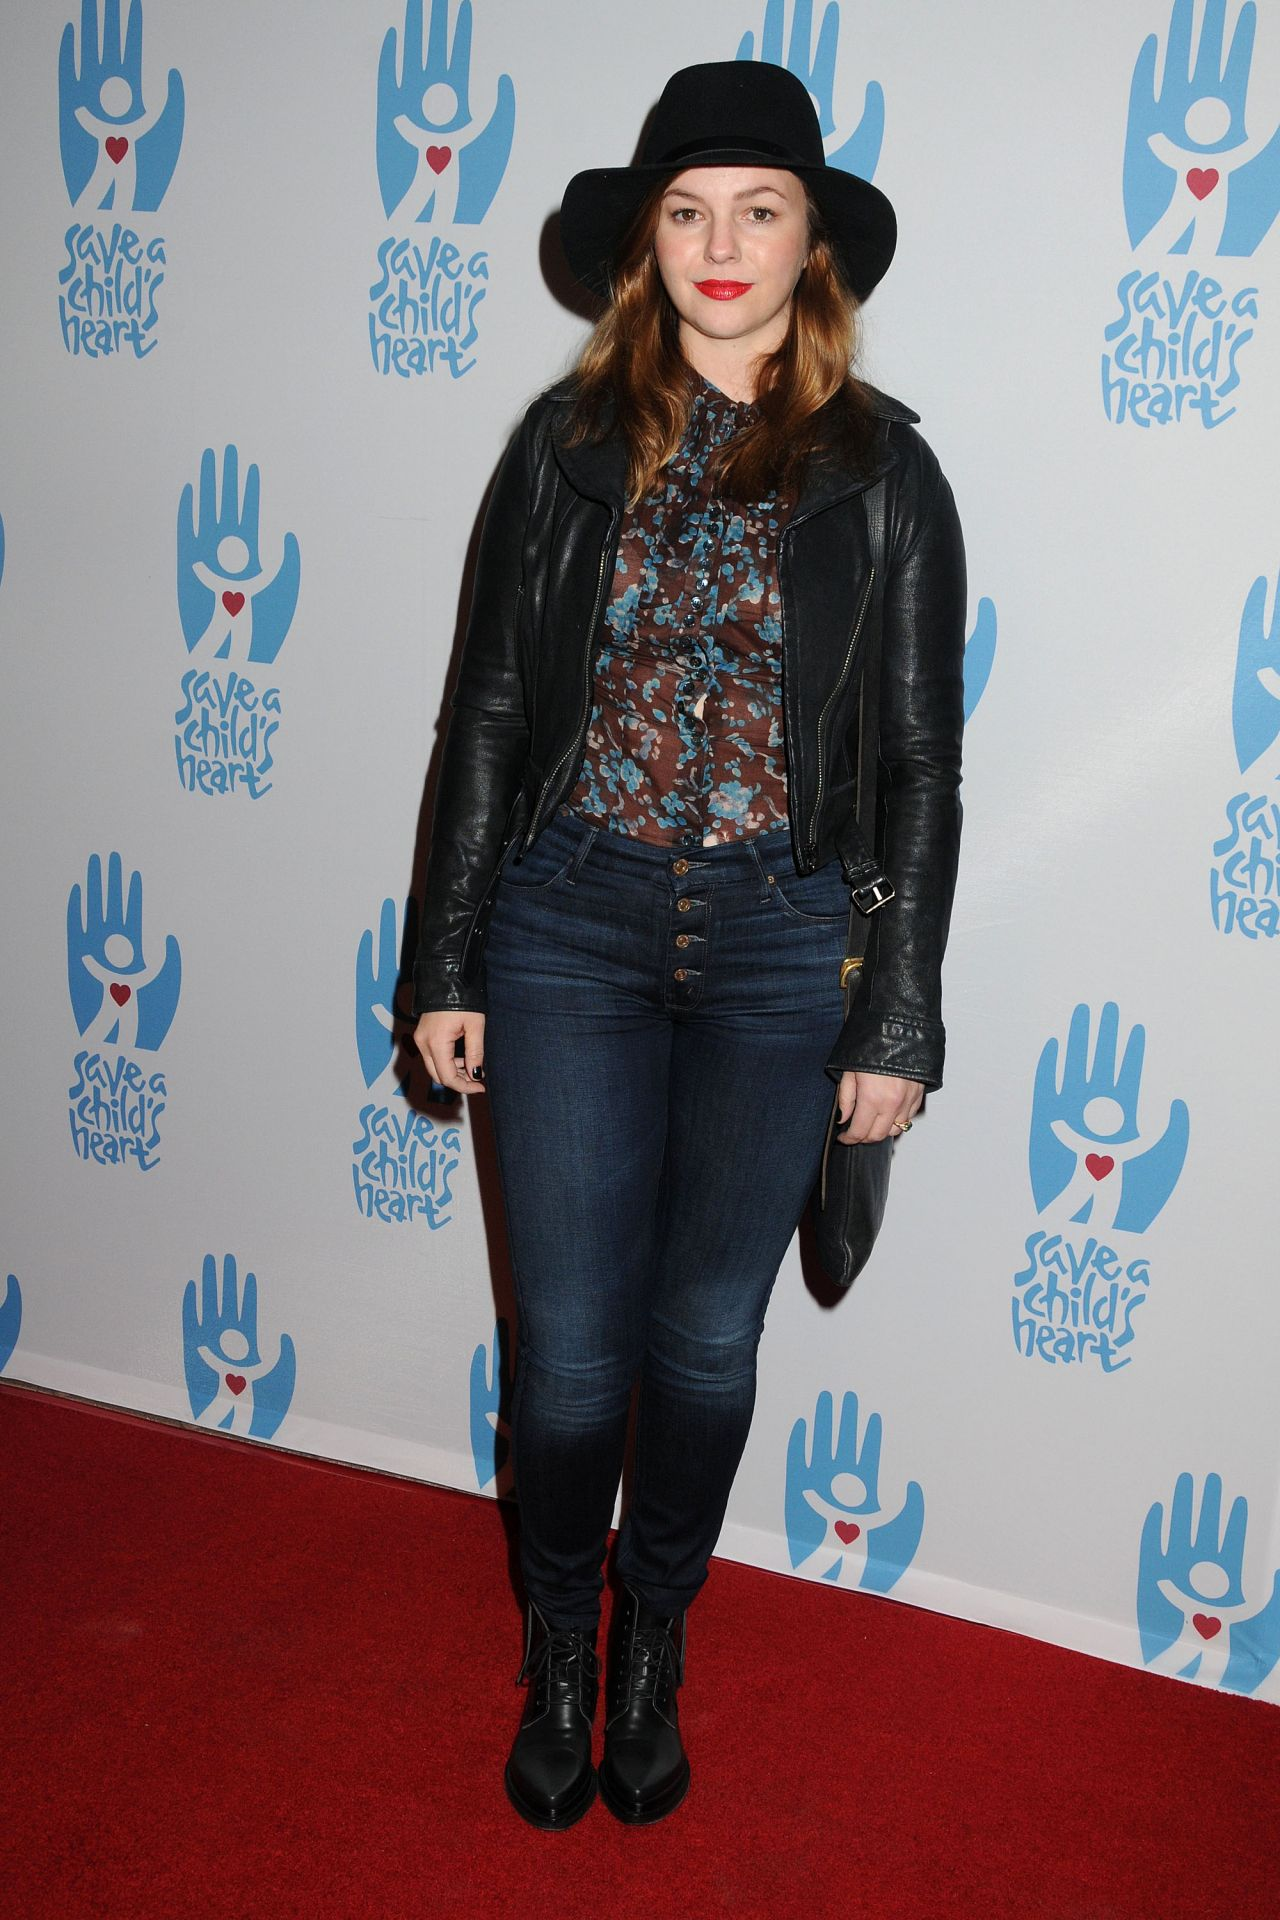 Amber Tamblyn - Save A Child